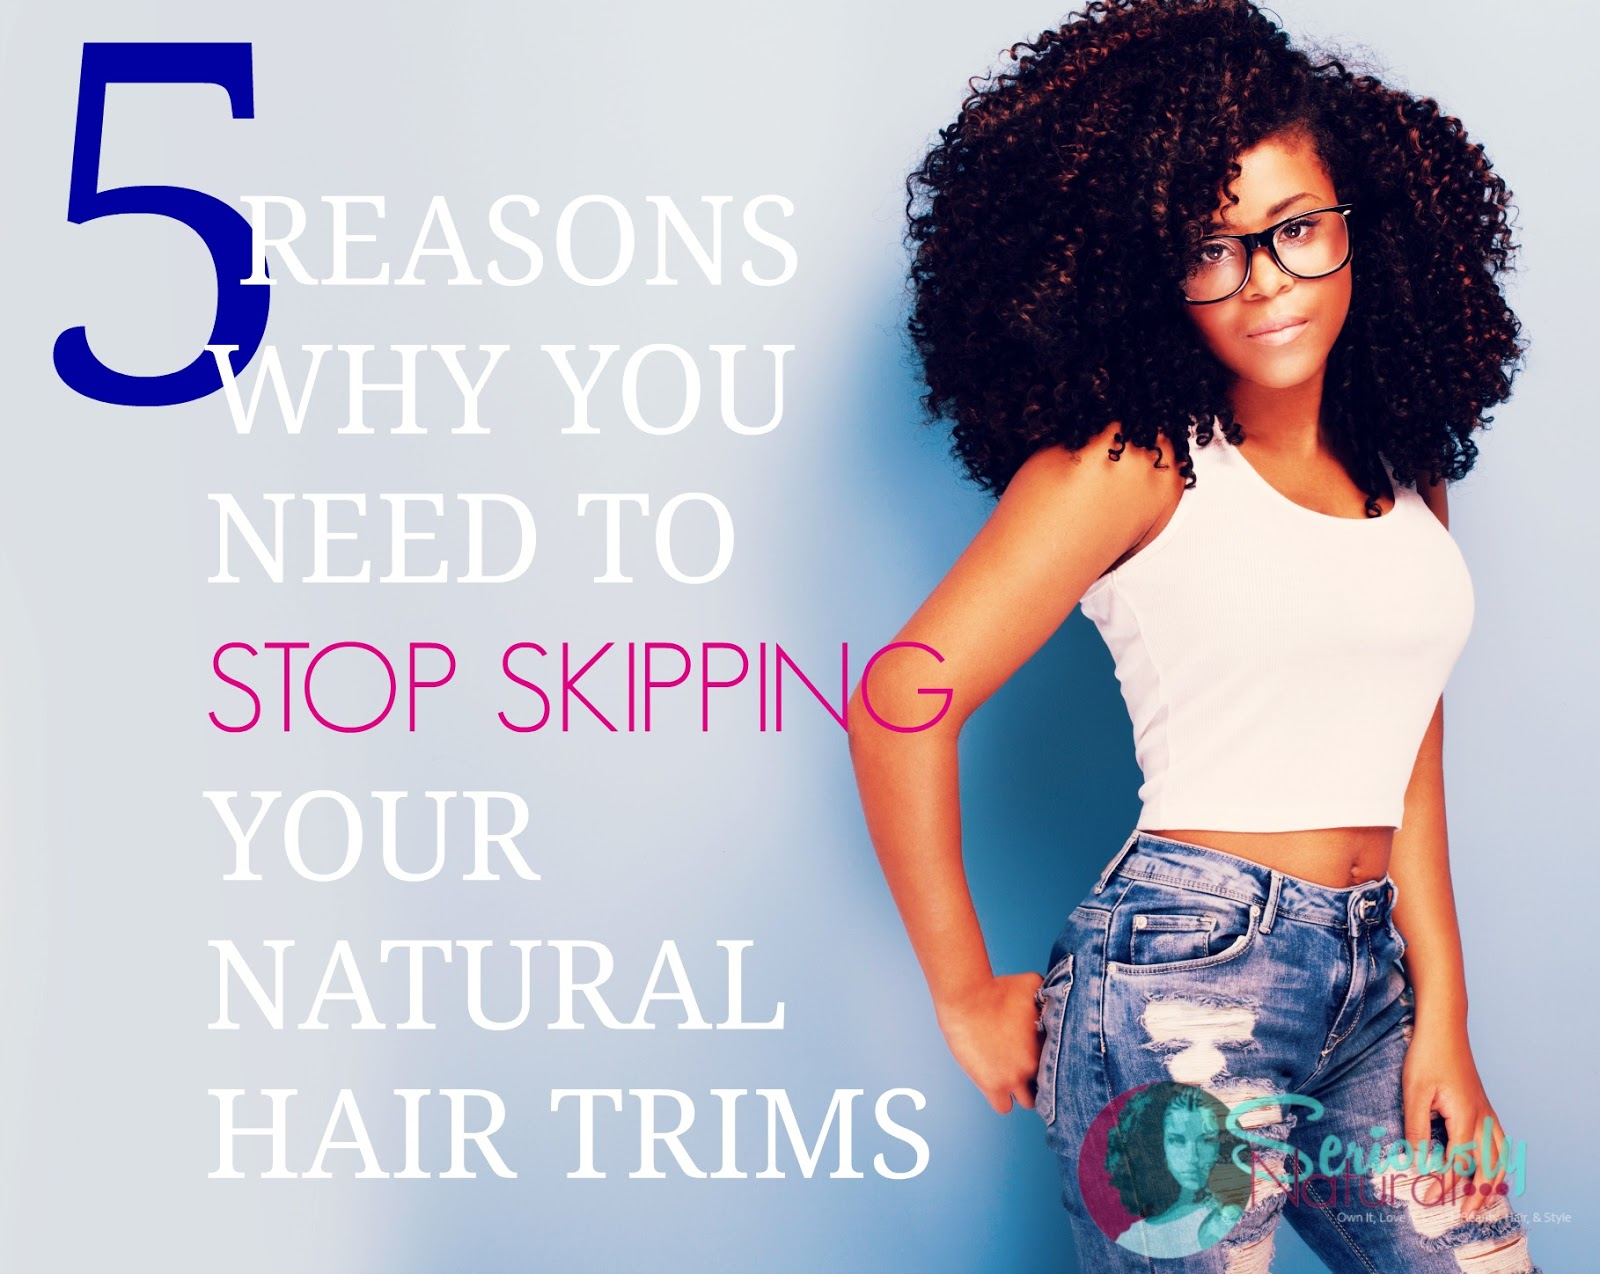 5 REASONS WHY YOU NEED TO STOP SKIPPING YOUR NATURAL HAIR TRIMS